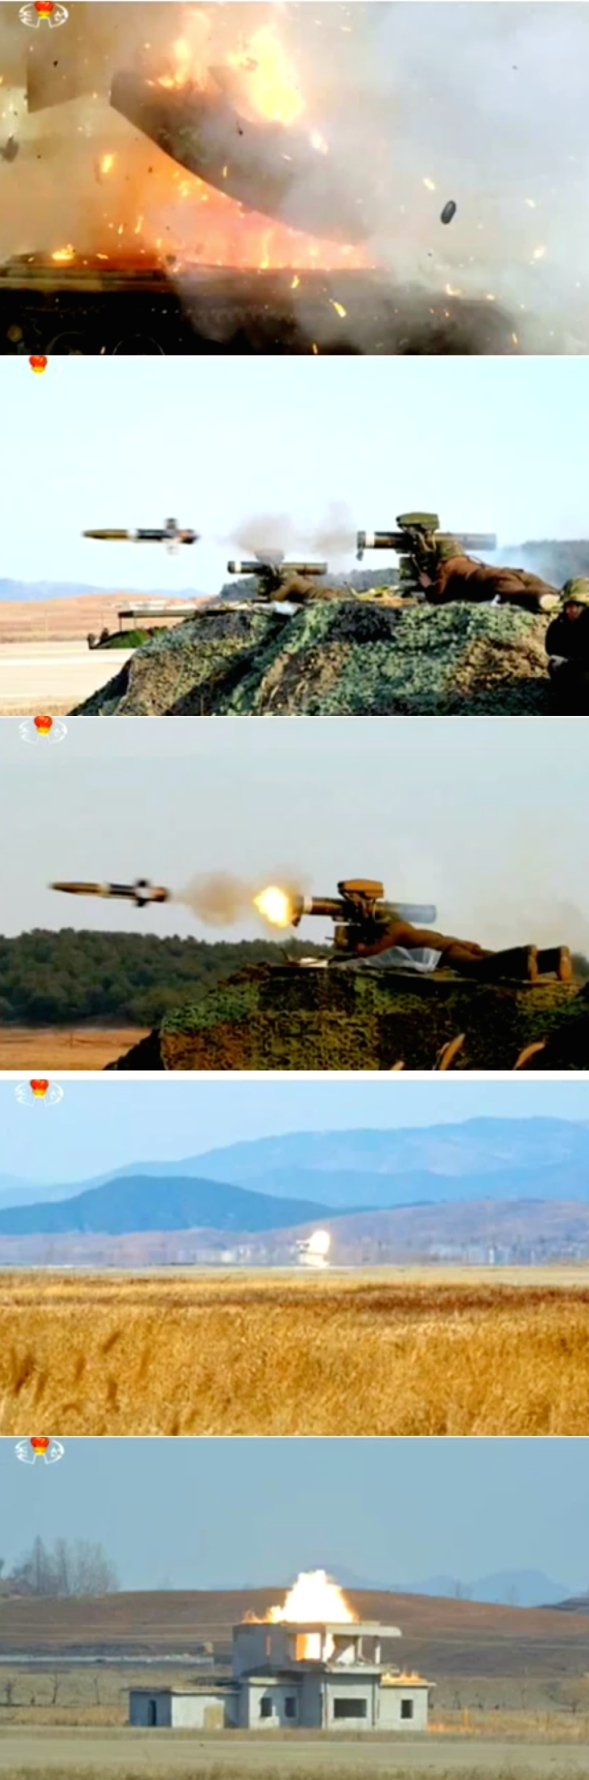 Stills from Korean Central Television News showing the test of anti-tank weapons (Photos: KCNA/KCTV/NK Leadership Watch screen grab).